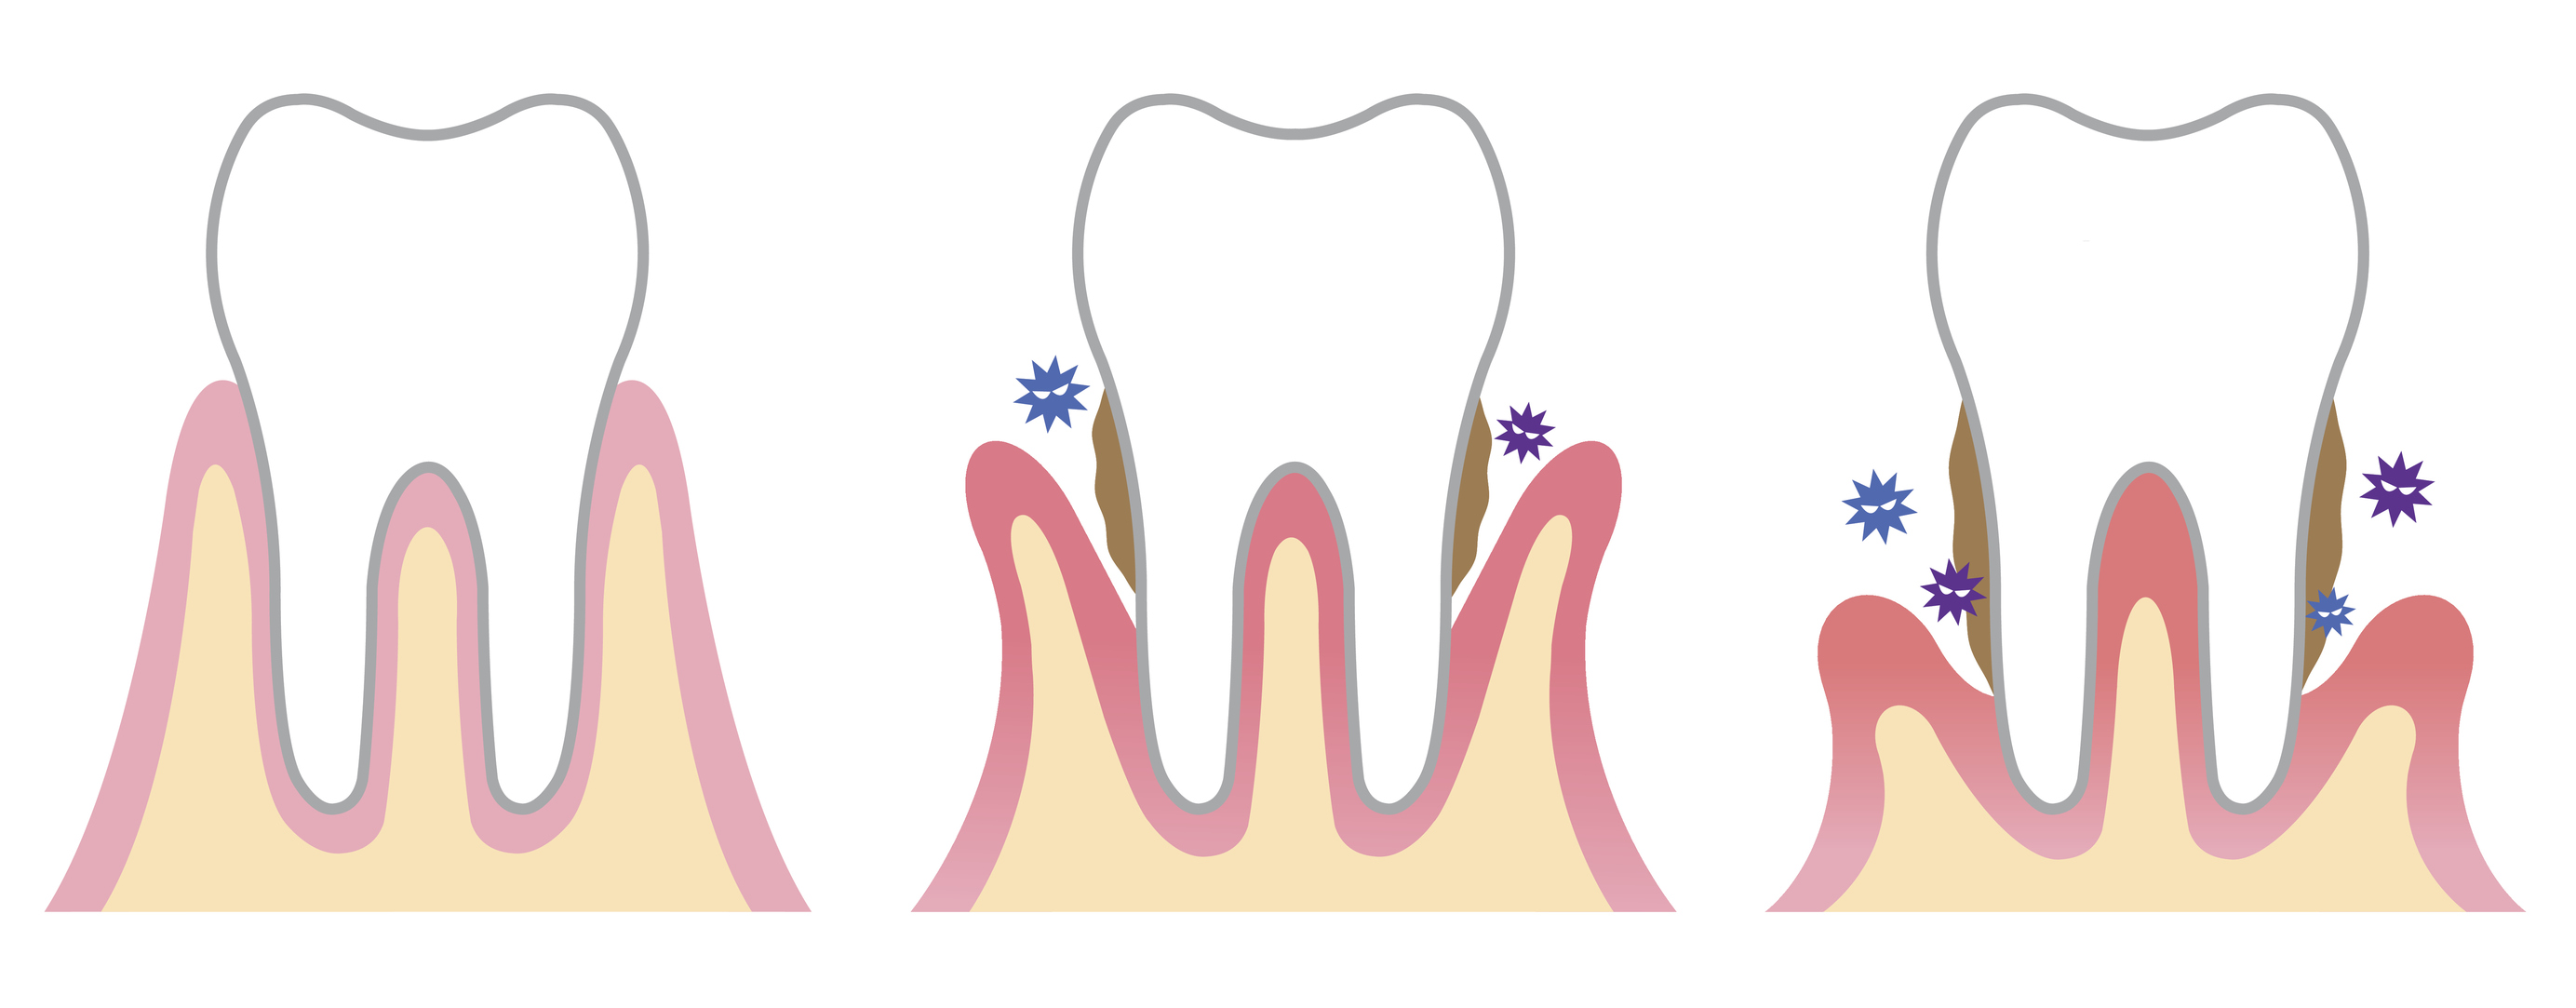 periodontal disease affect the bone that surrounds and supports teeth. plaque build up and the bacteria infect not only your gums and teeth, but eventually the bone that support the teeth.